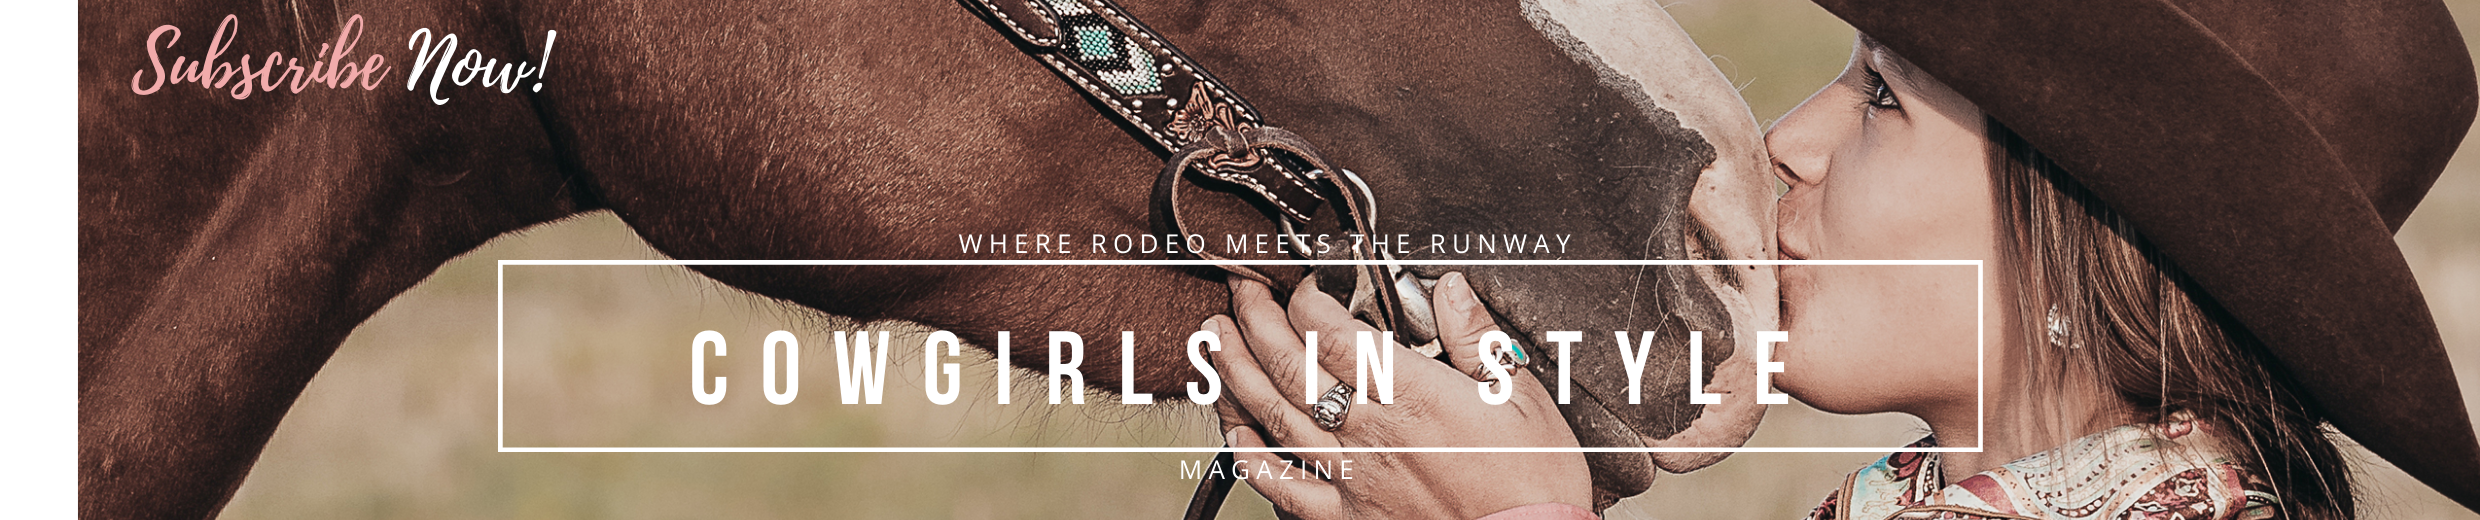 June 2019 - Cowgirls In Style Magazine